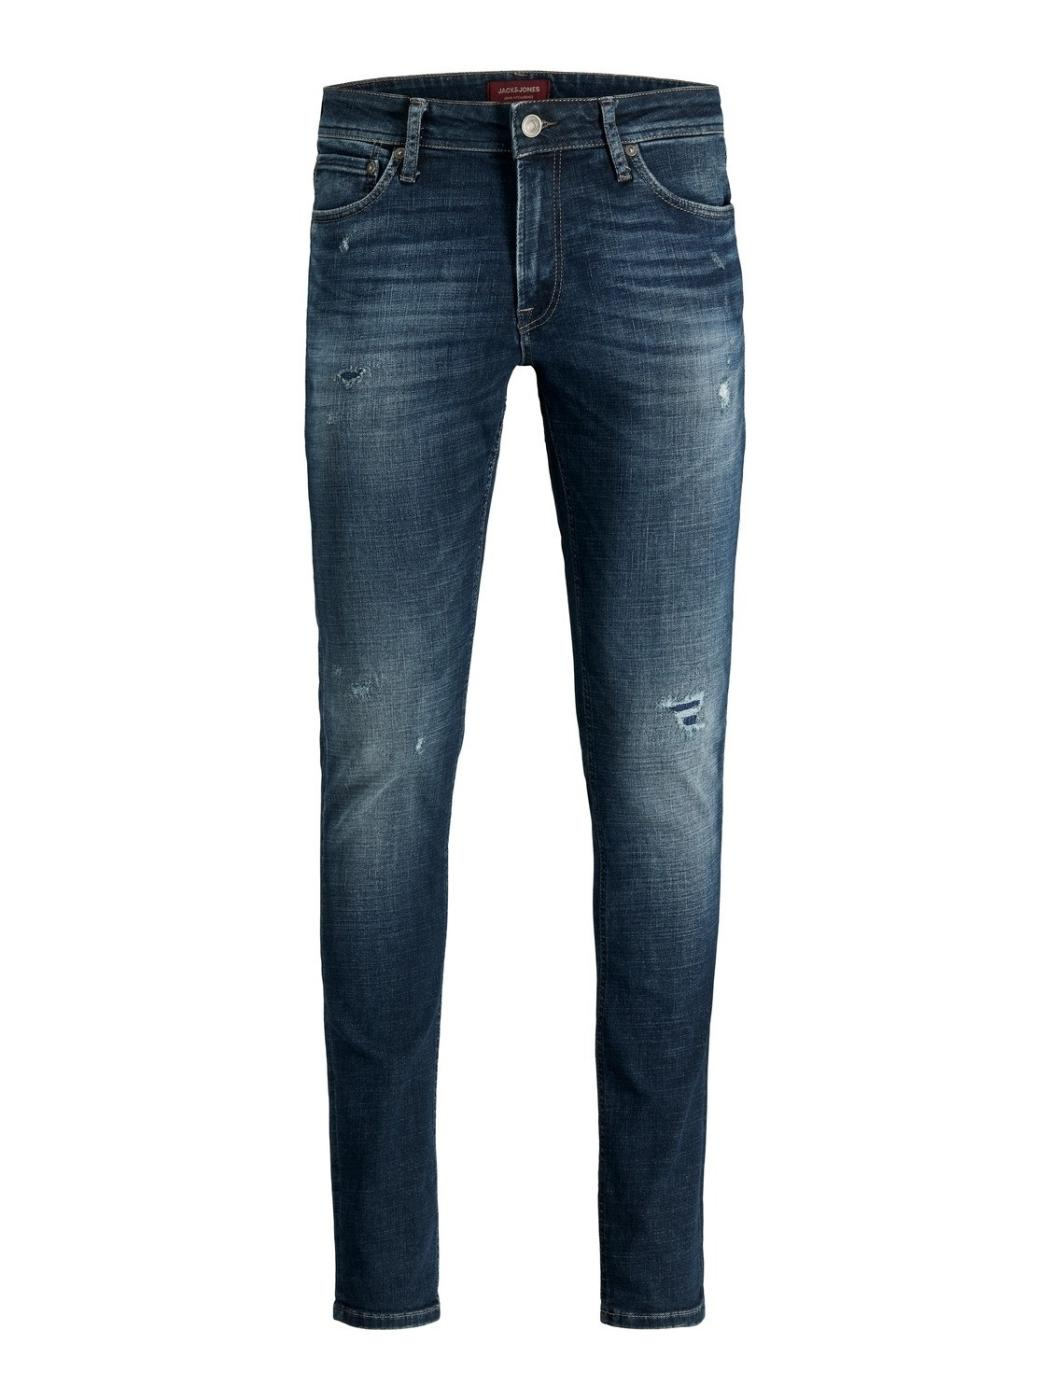 JJILIAM JJORIGINAL NOOS BLUE DENIM-X